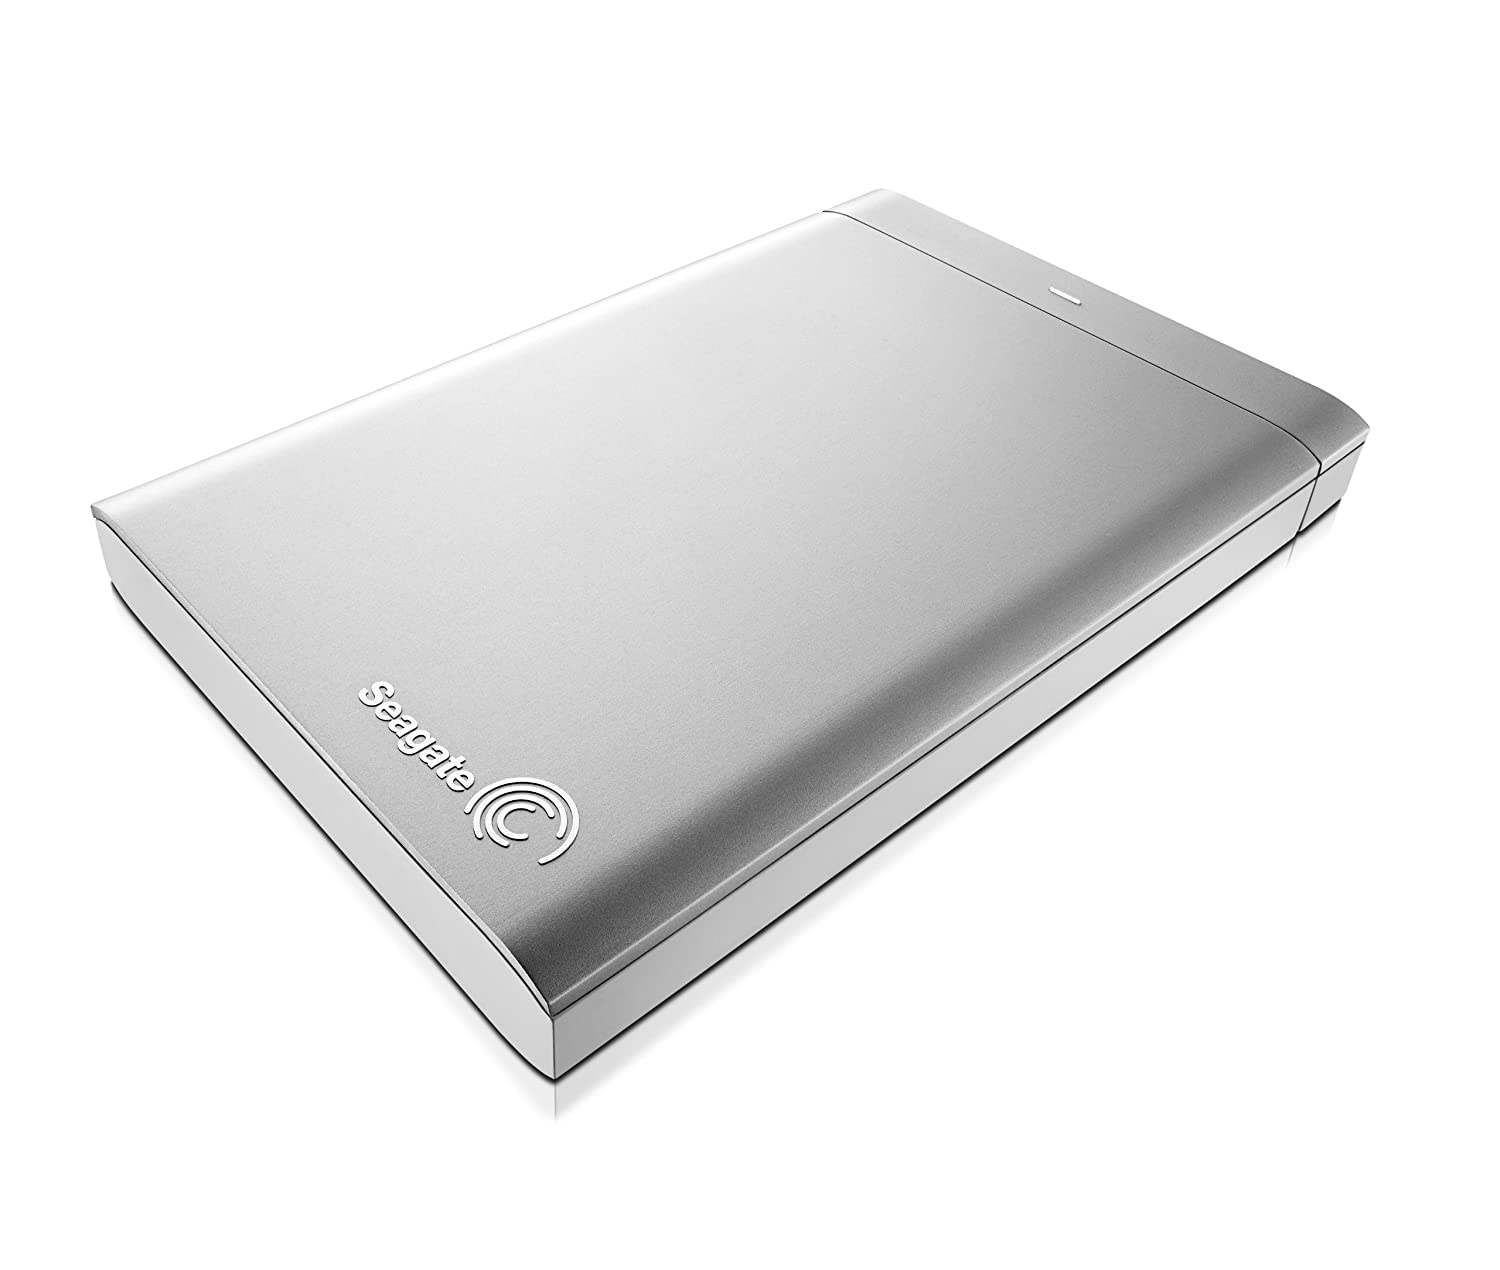 NEW DRIVERS: SEAGATE 500GB EXTERNAL HARD DRIVE